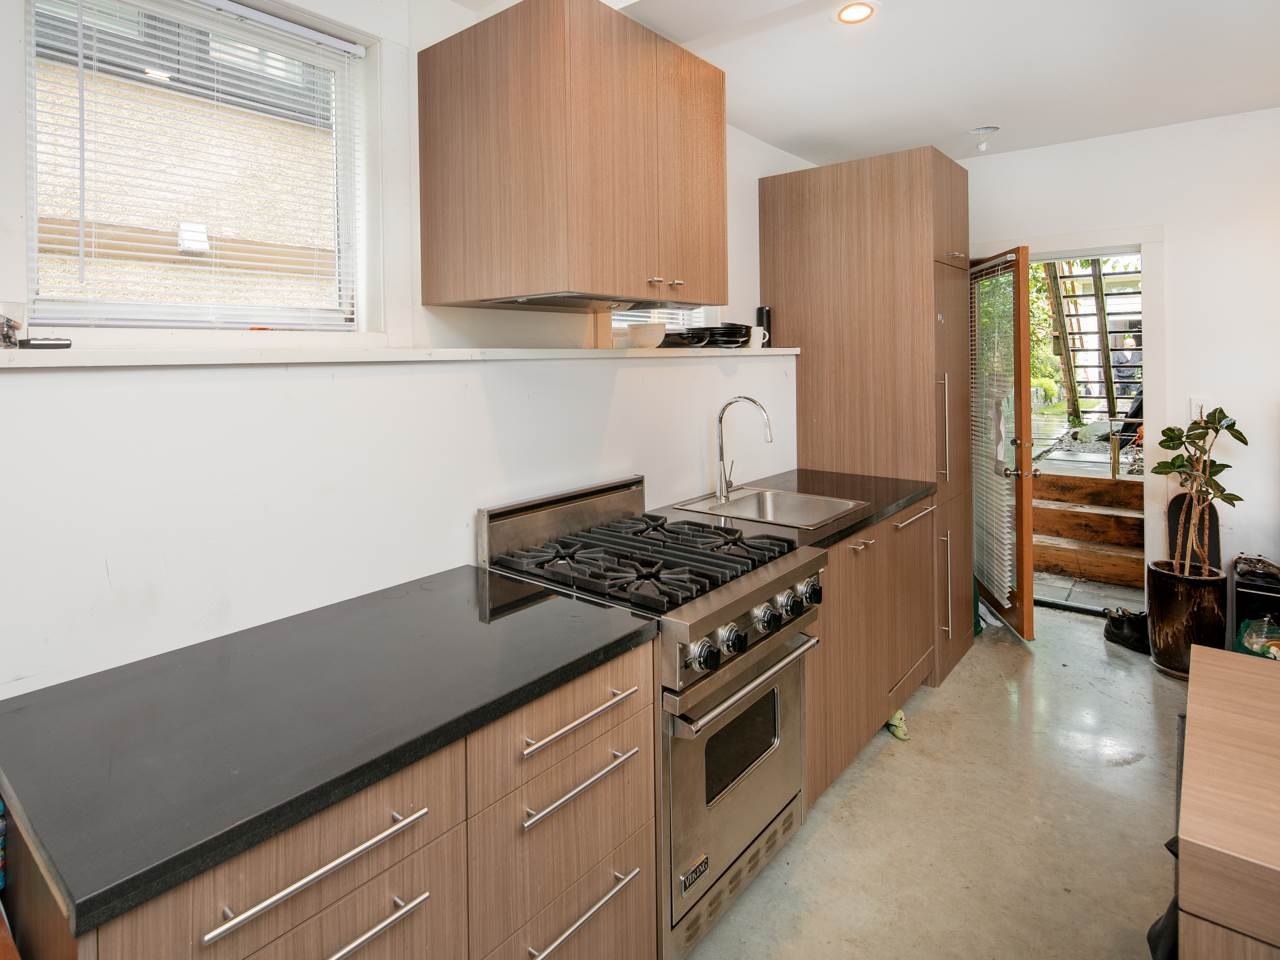 Photo 17: 880 KEEFER Street in Vancouver: Mount Pleasant VE House for sale (Vancouver East)  : MLS® # R2176389